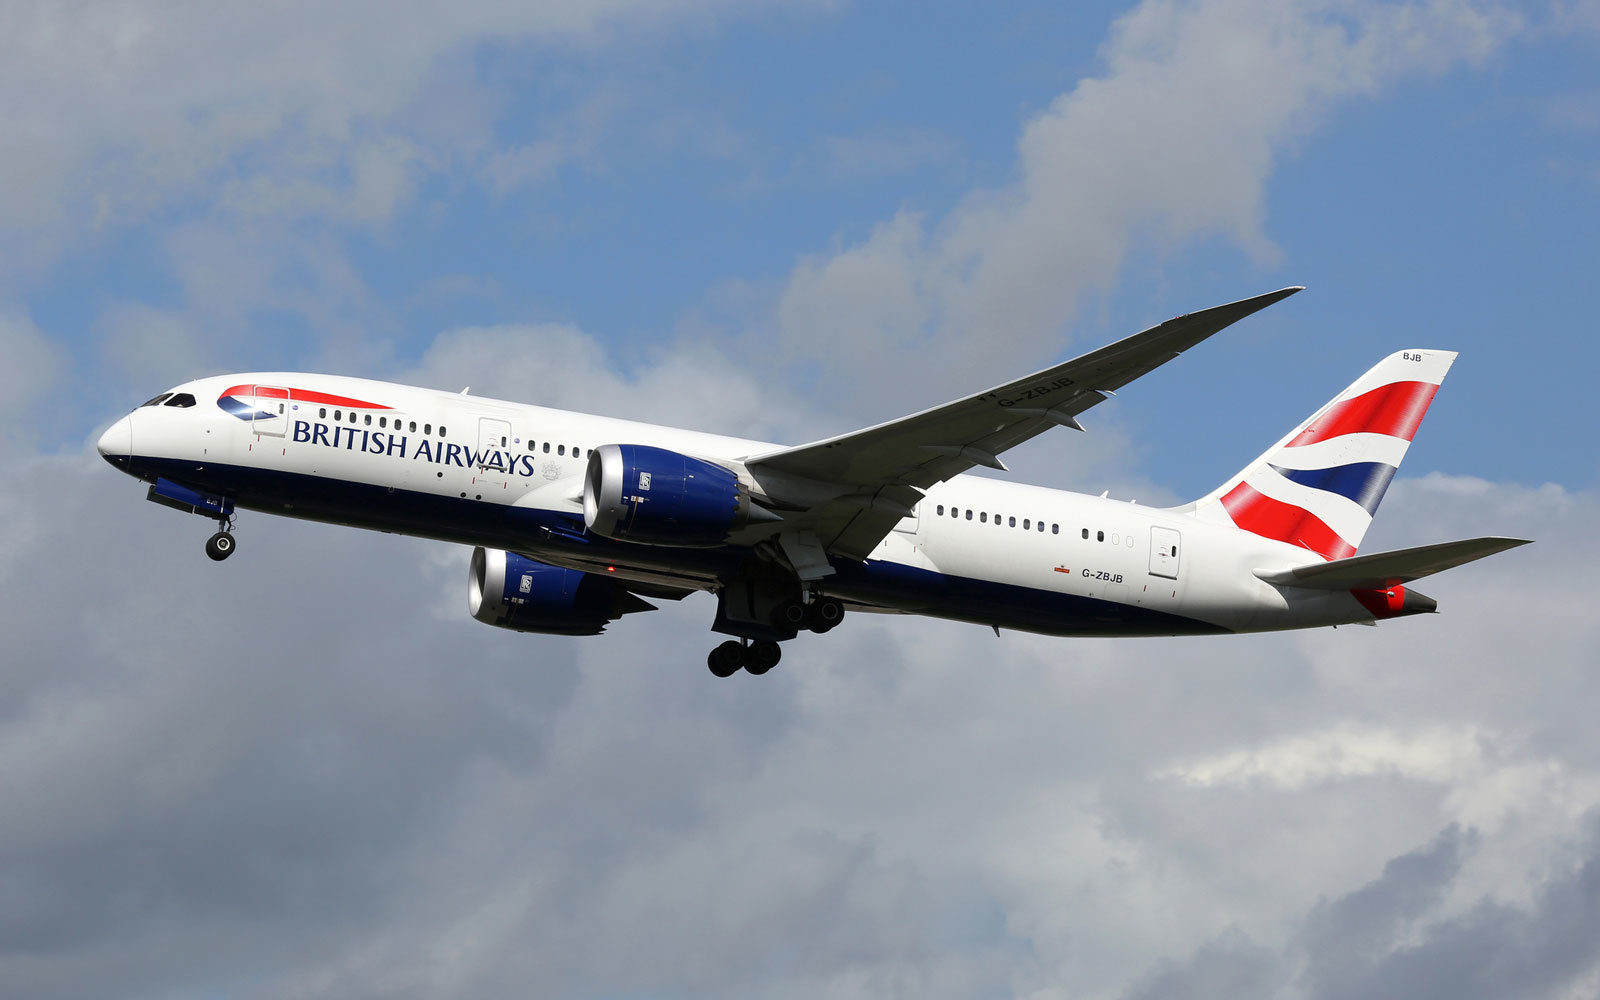 British Airways had computer issues overnight into Tuesday, causing widespread delays.